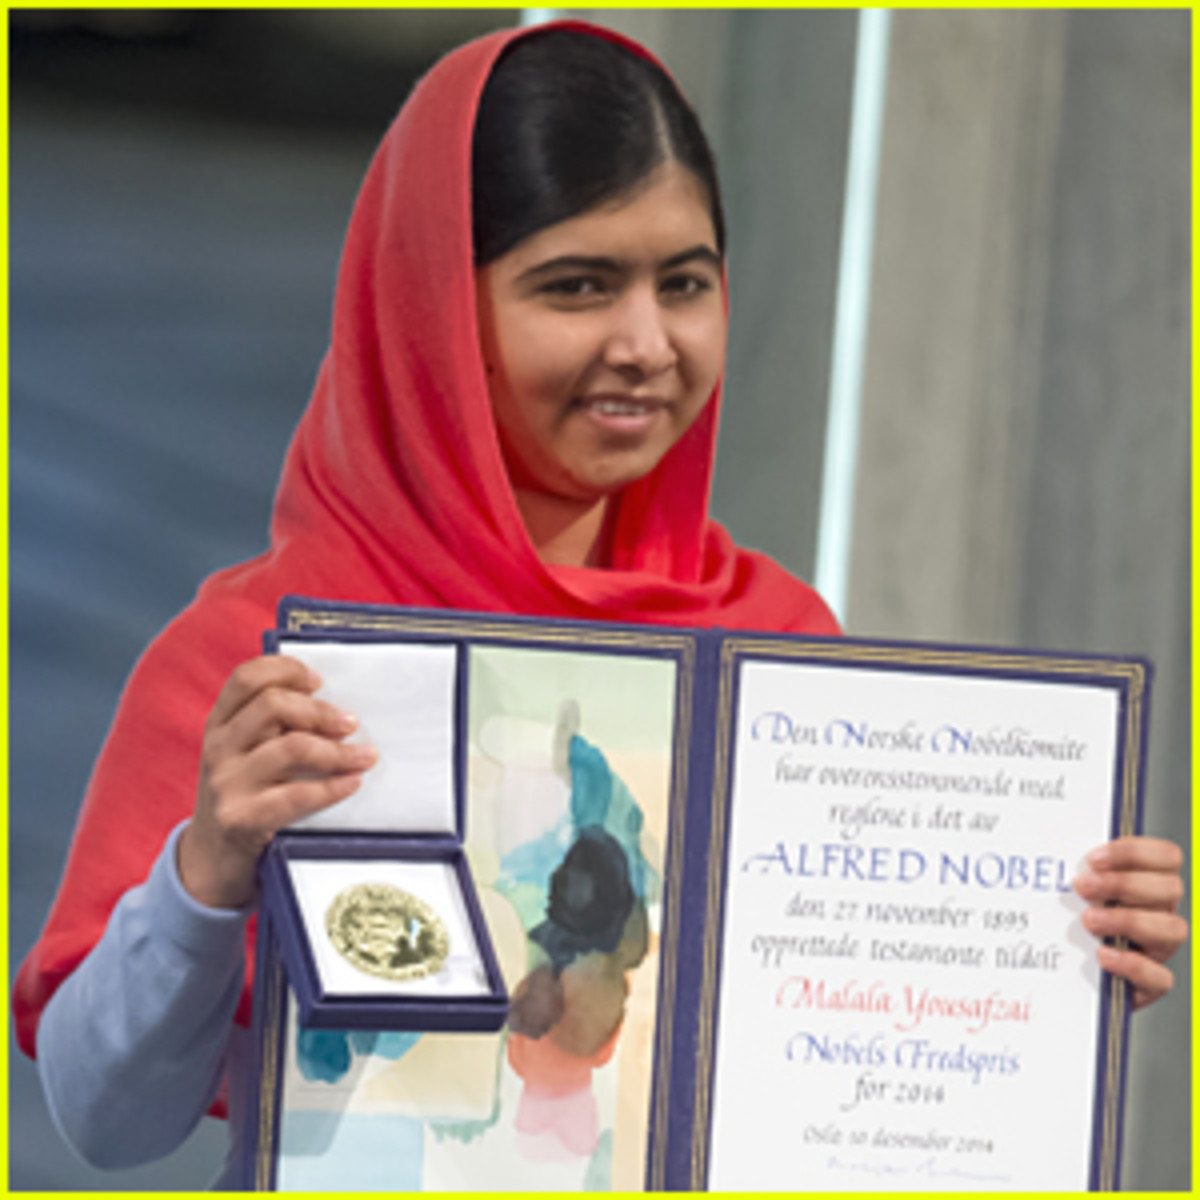 Malala Yousafzai with Nobel Peace Prize